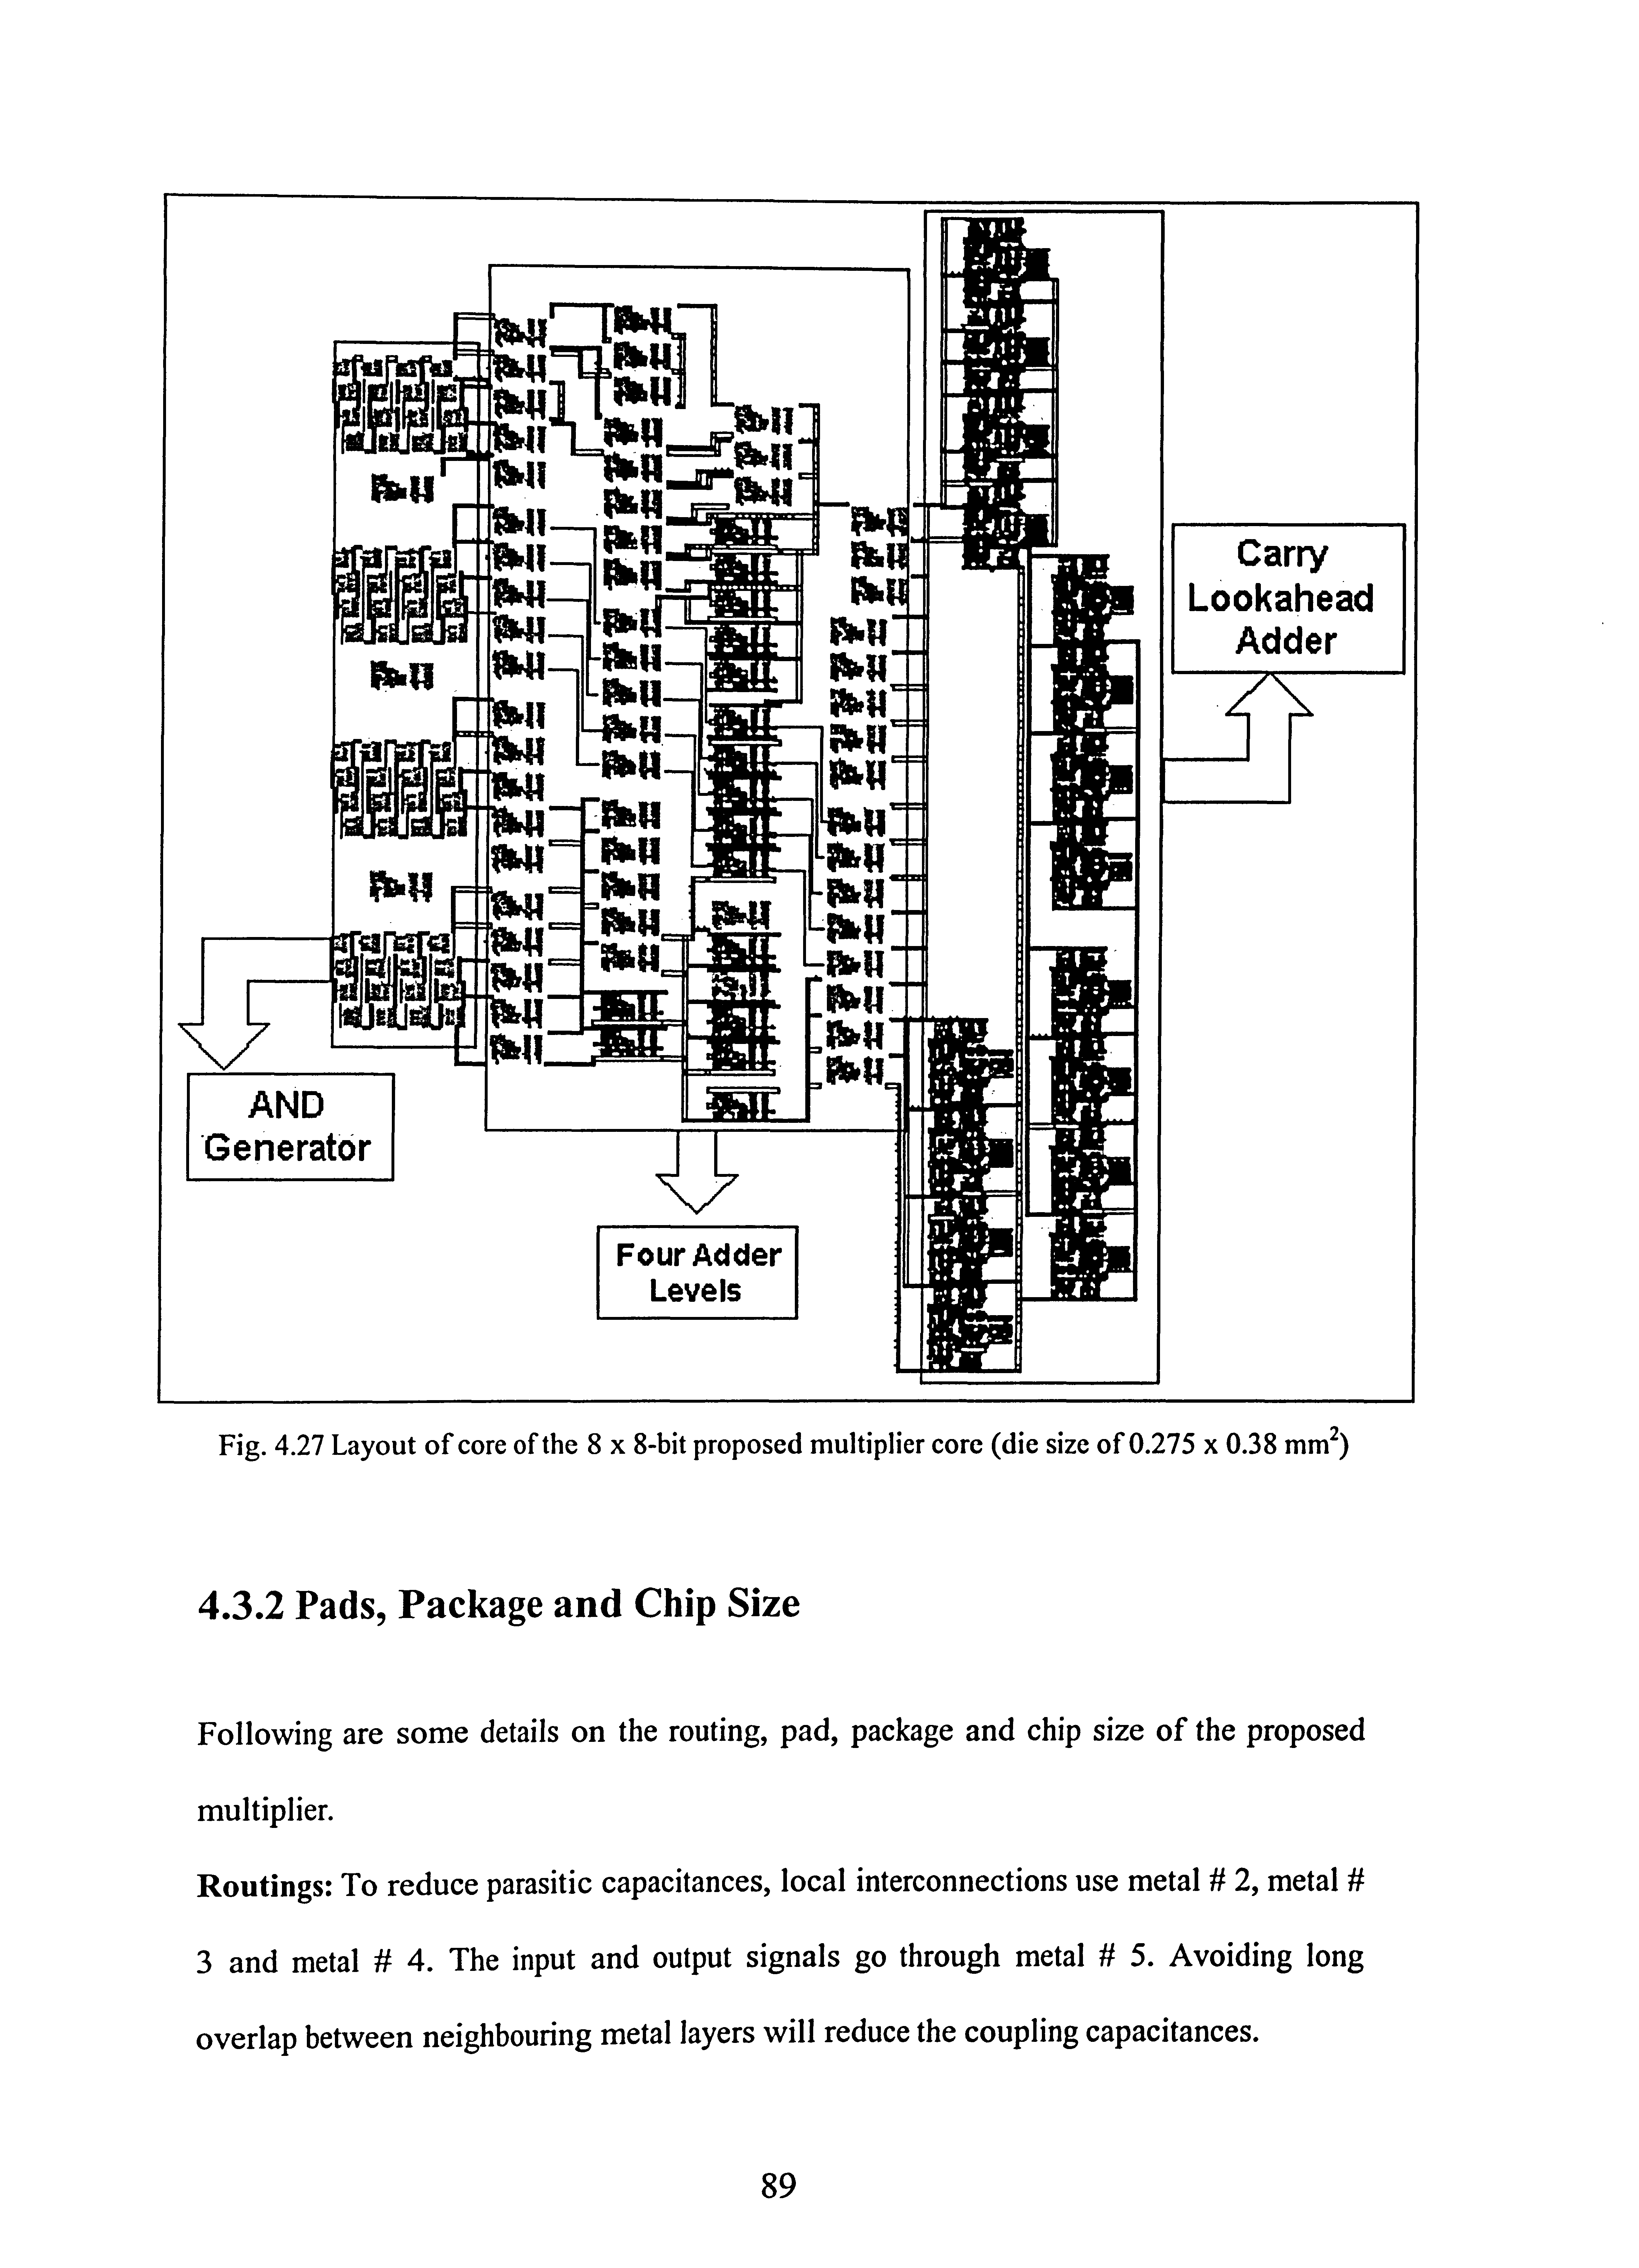 A 18v 11 Ghz Novel Pdf Adder Circuit I Have Successfully Drawn 8 Bit Full Carry Lookahead And Generator F Our Dder L Evels Fig 427 Layout Of